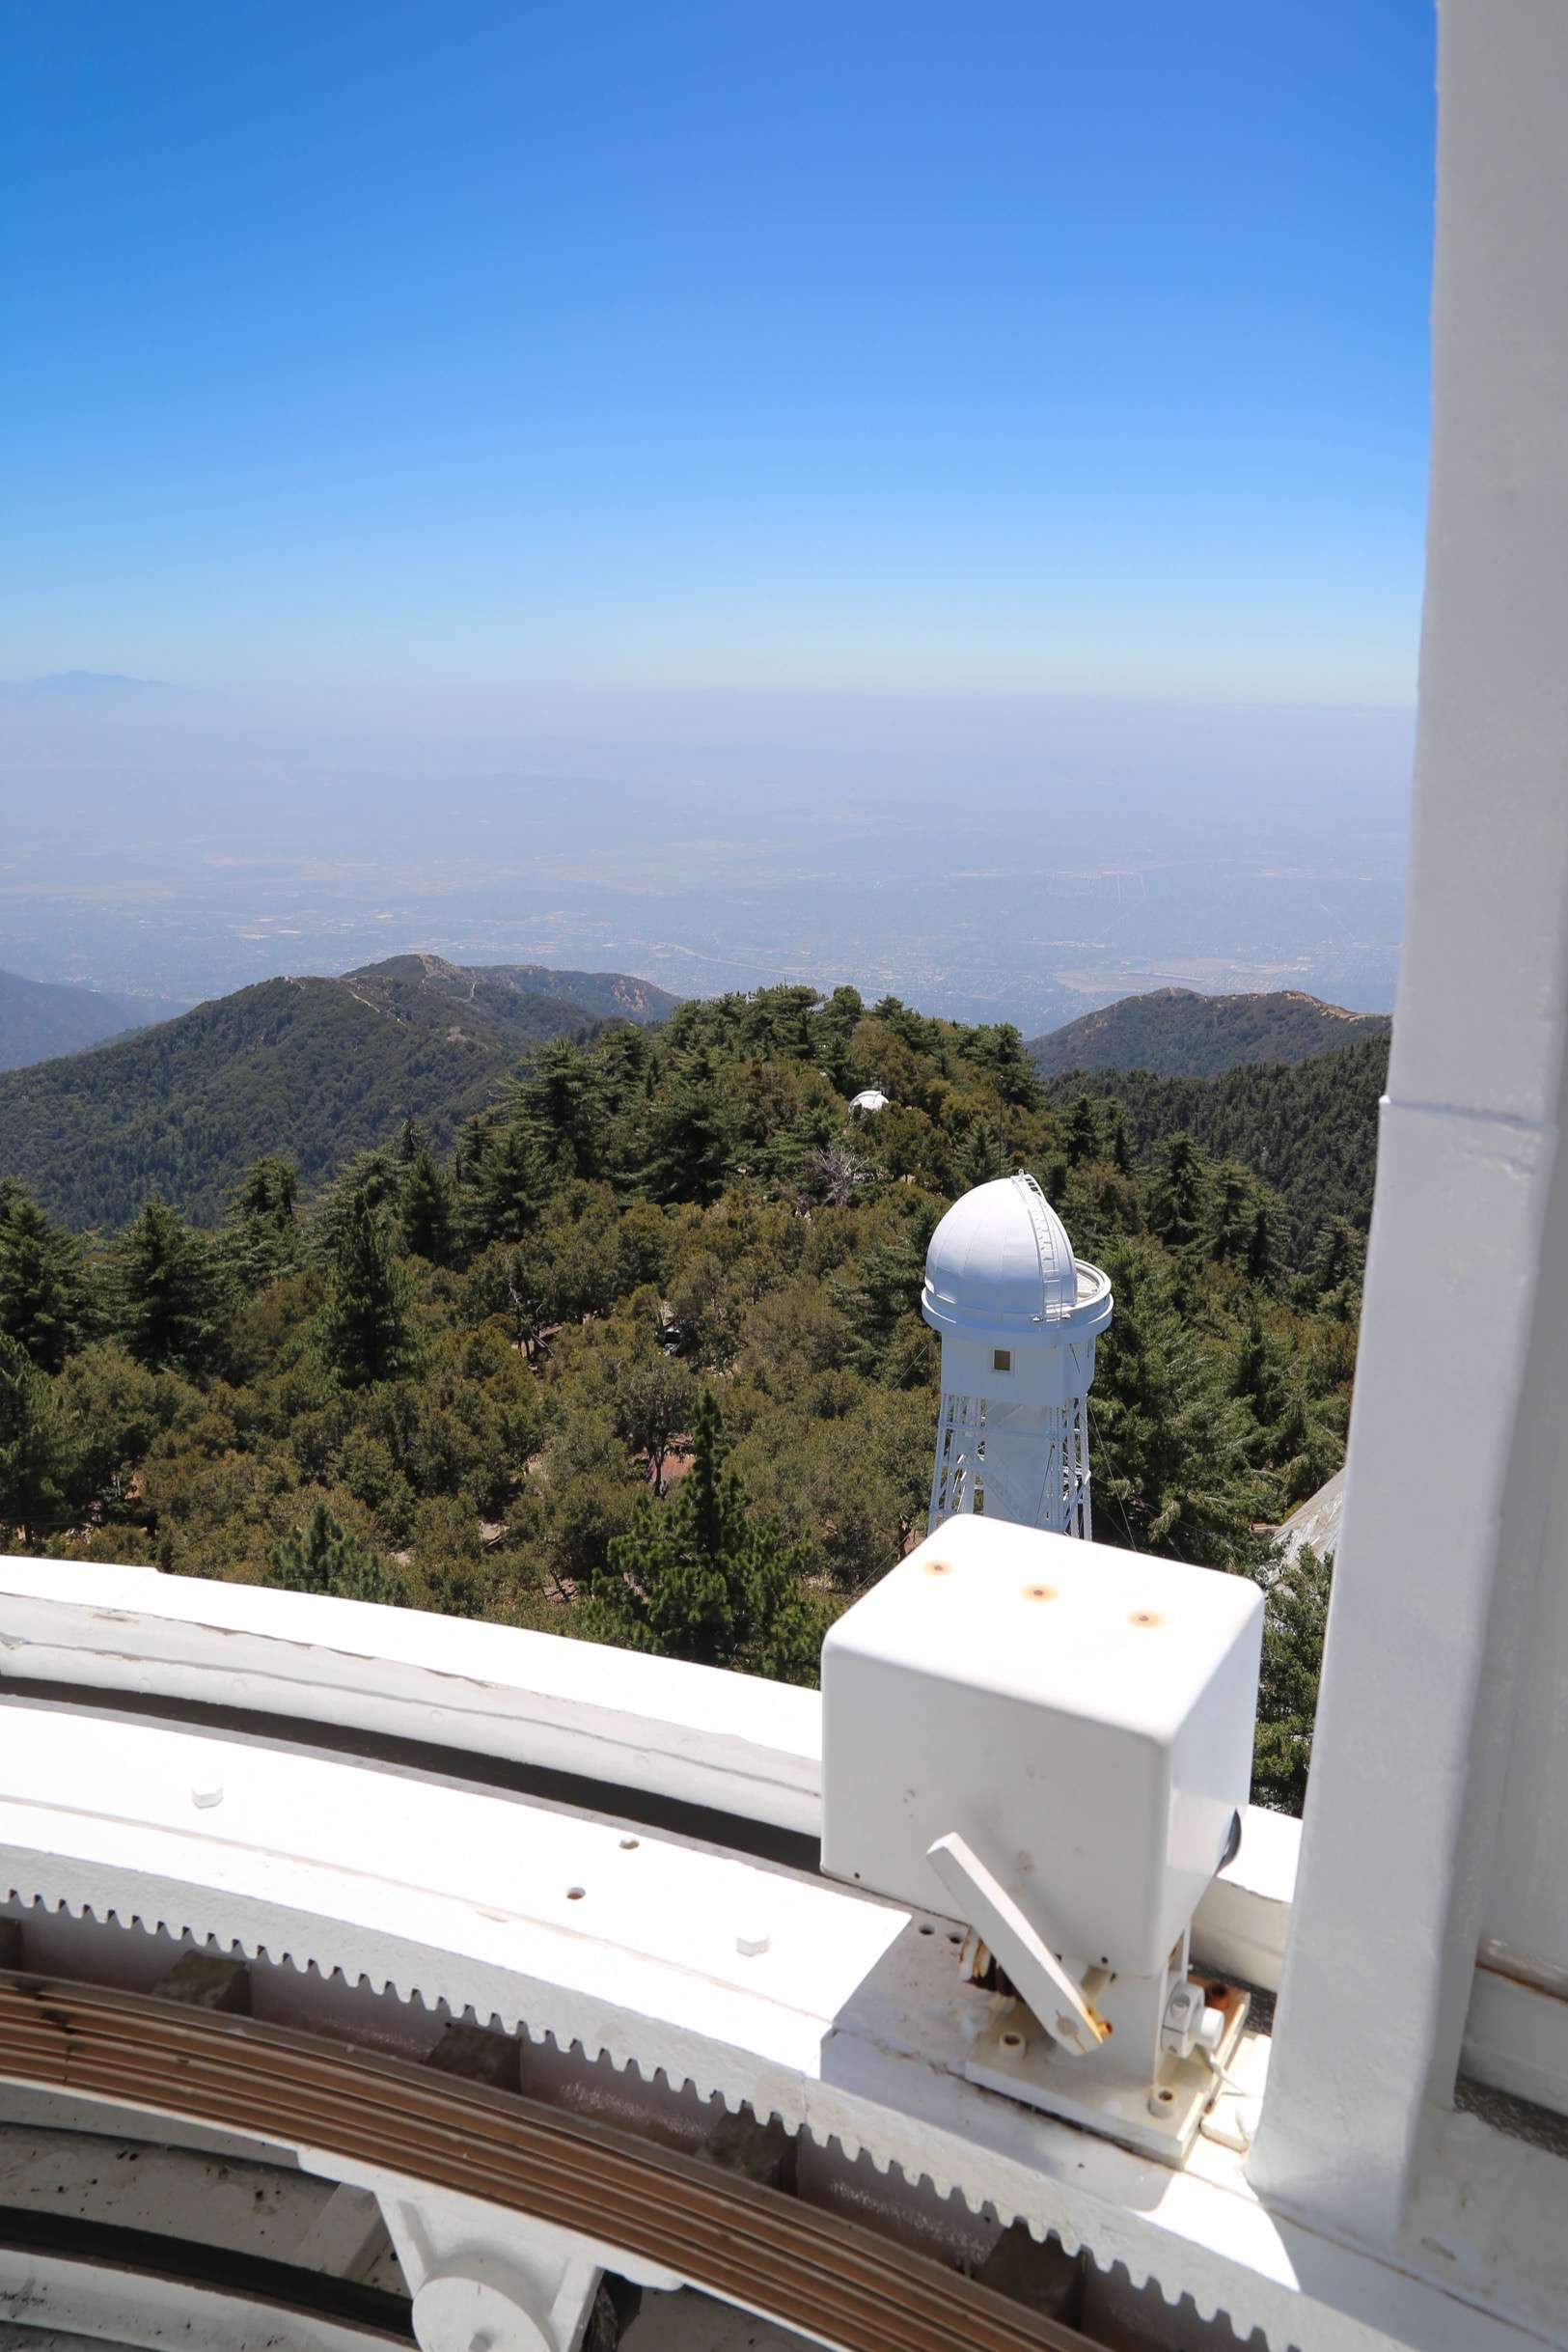 The top of the 150-foot solar observatory is a great place to view the countryside, or in this case, the 60-foot solar observatory.